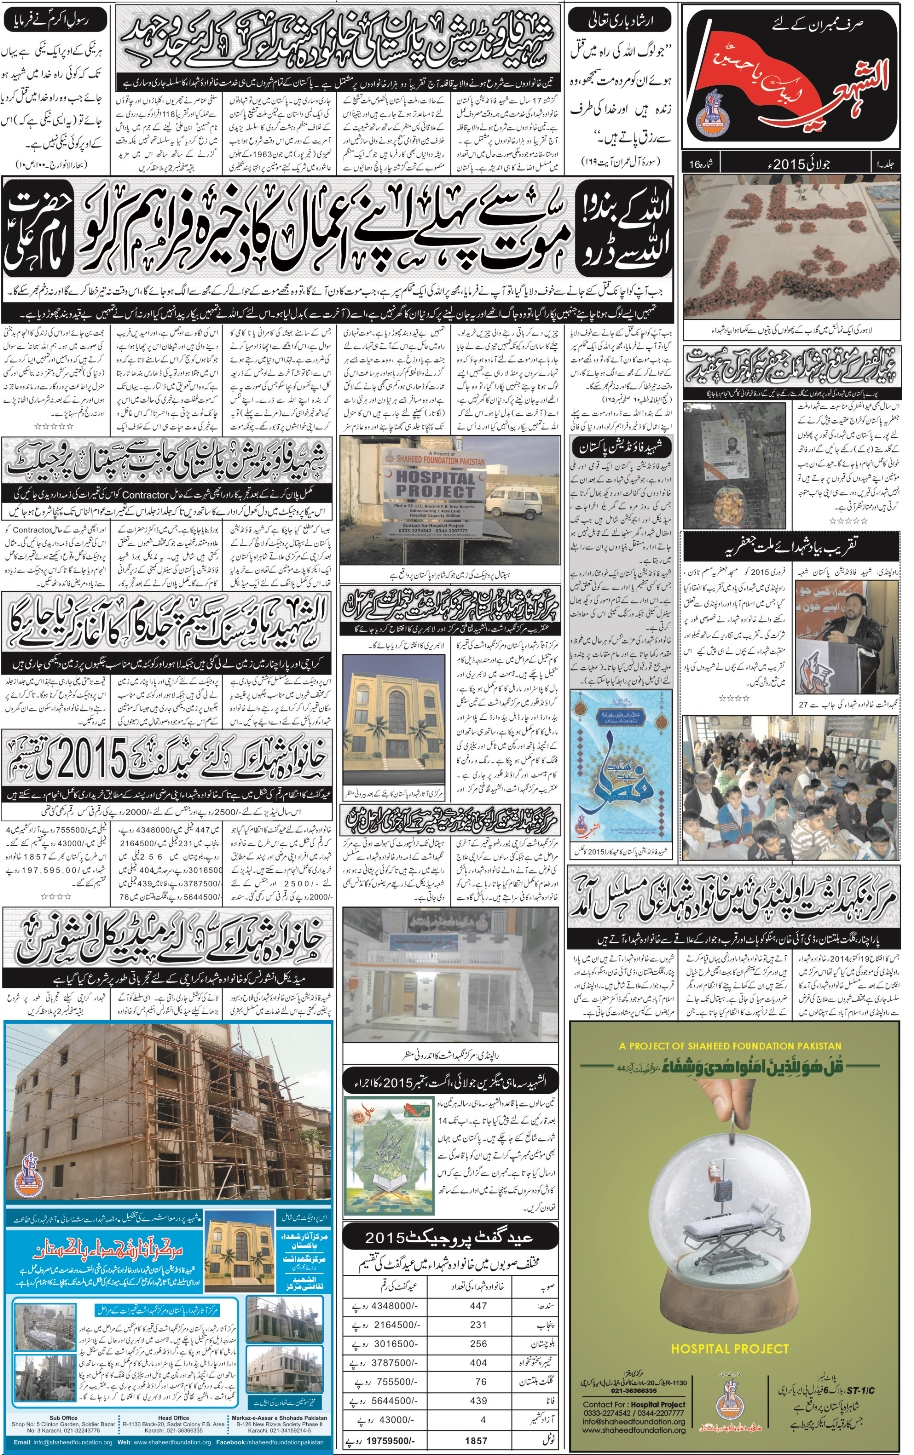 Al Shaheed News paper (July 2015) Issue